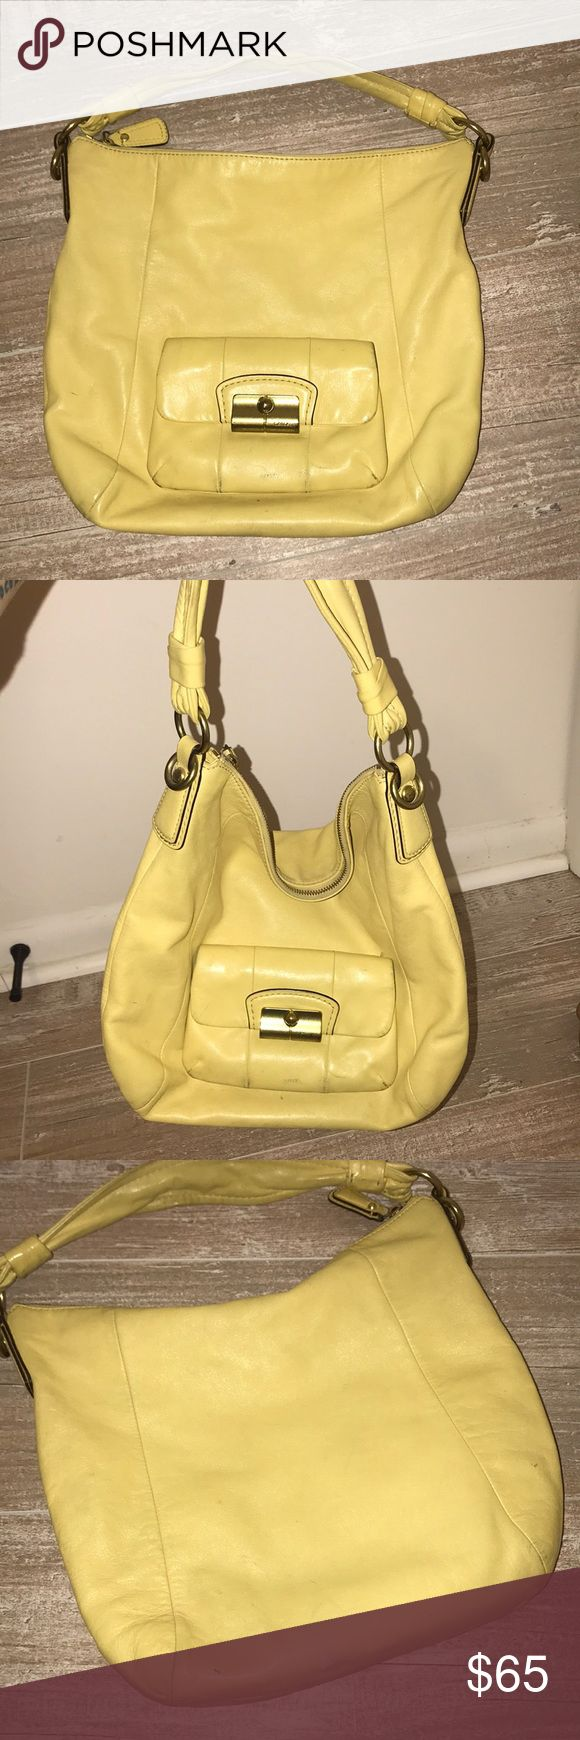 Coach Hobo Yellow Coach Hobo bag. Gently used, minor scratches/marks on the bottom of the bag. Inside of bag is clean. Bright yellow color, perfect for Spring! Coach Bags Hobos